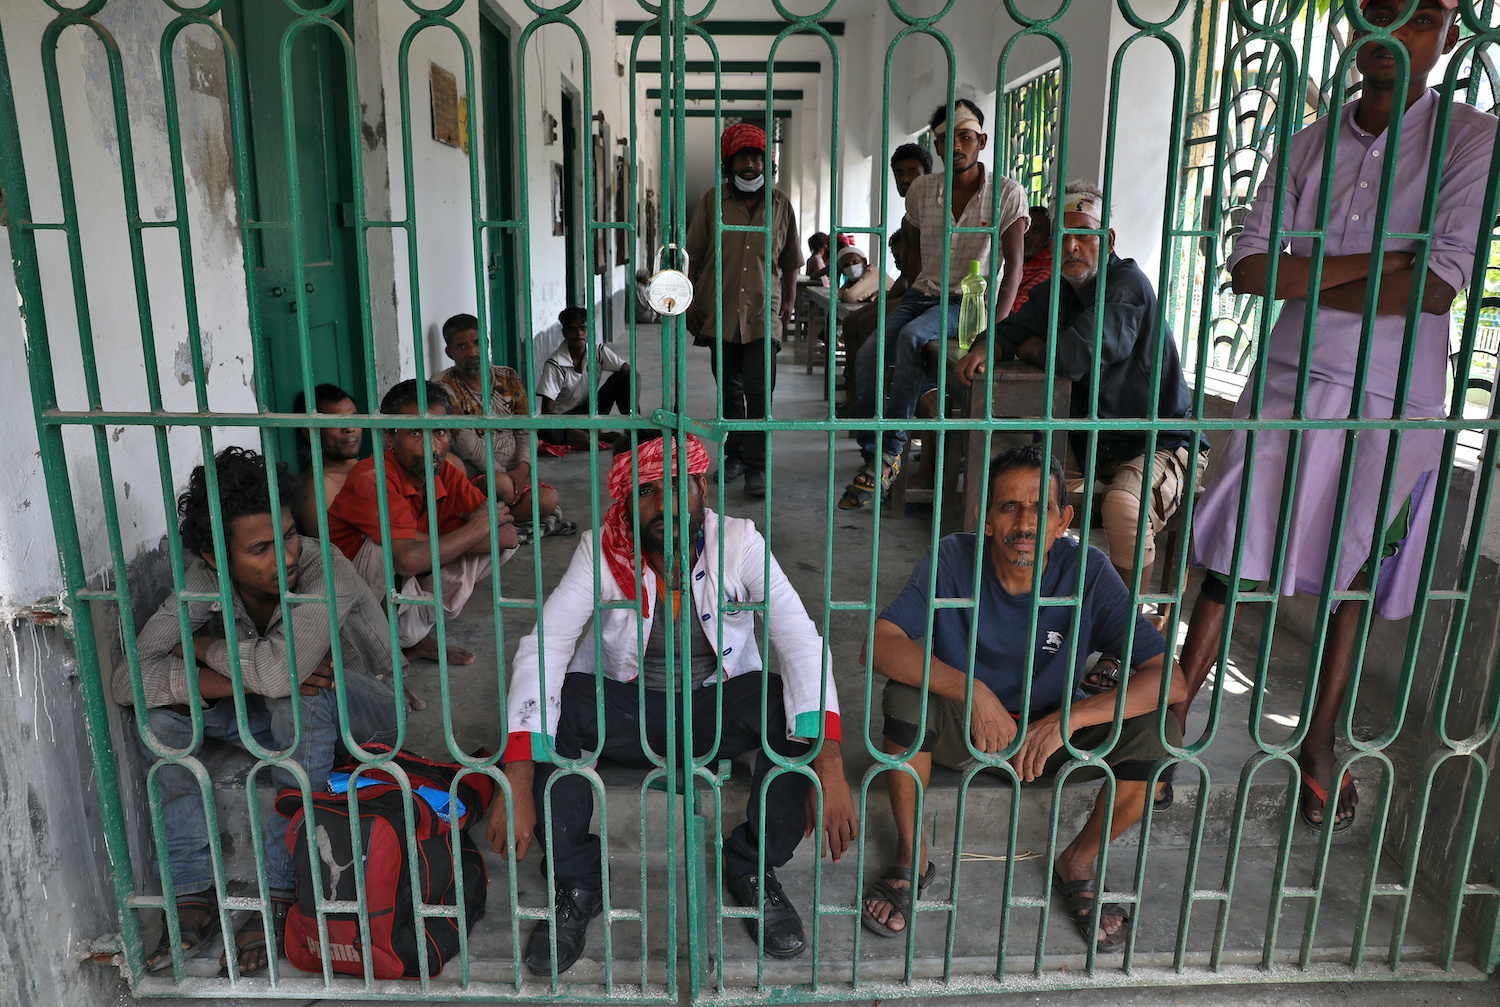 Homeless people sit in the corridor of a locked shelter where they have been confined during India's 21-day nationwide lockdown, at Howrah, on the outskirts of Kolkata. (Reuters Photo)